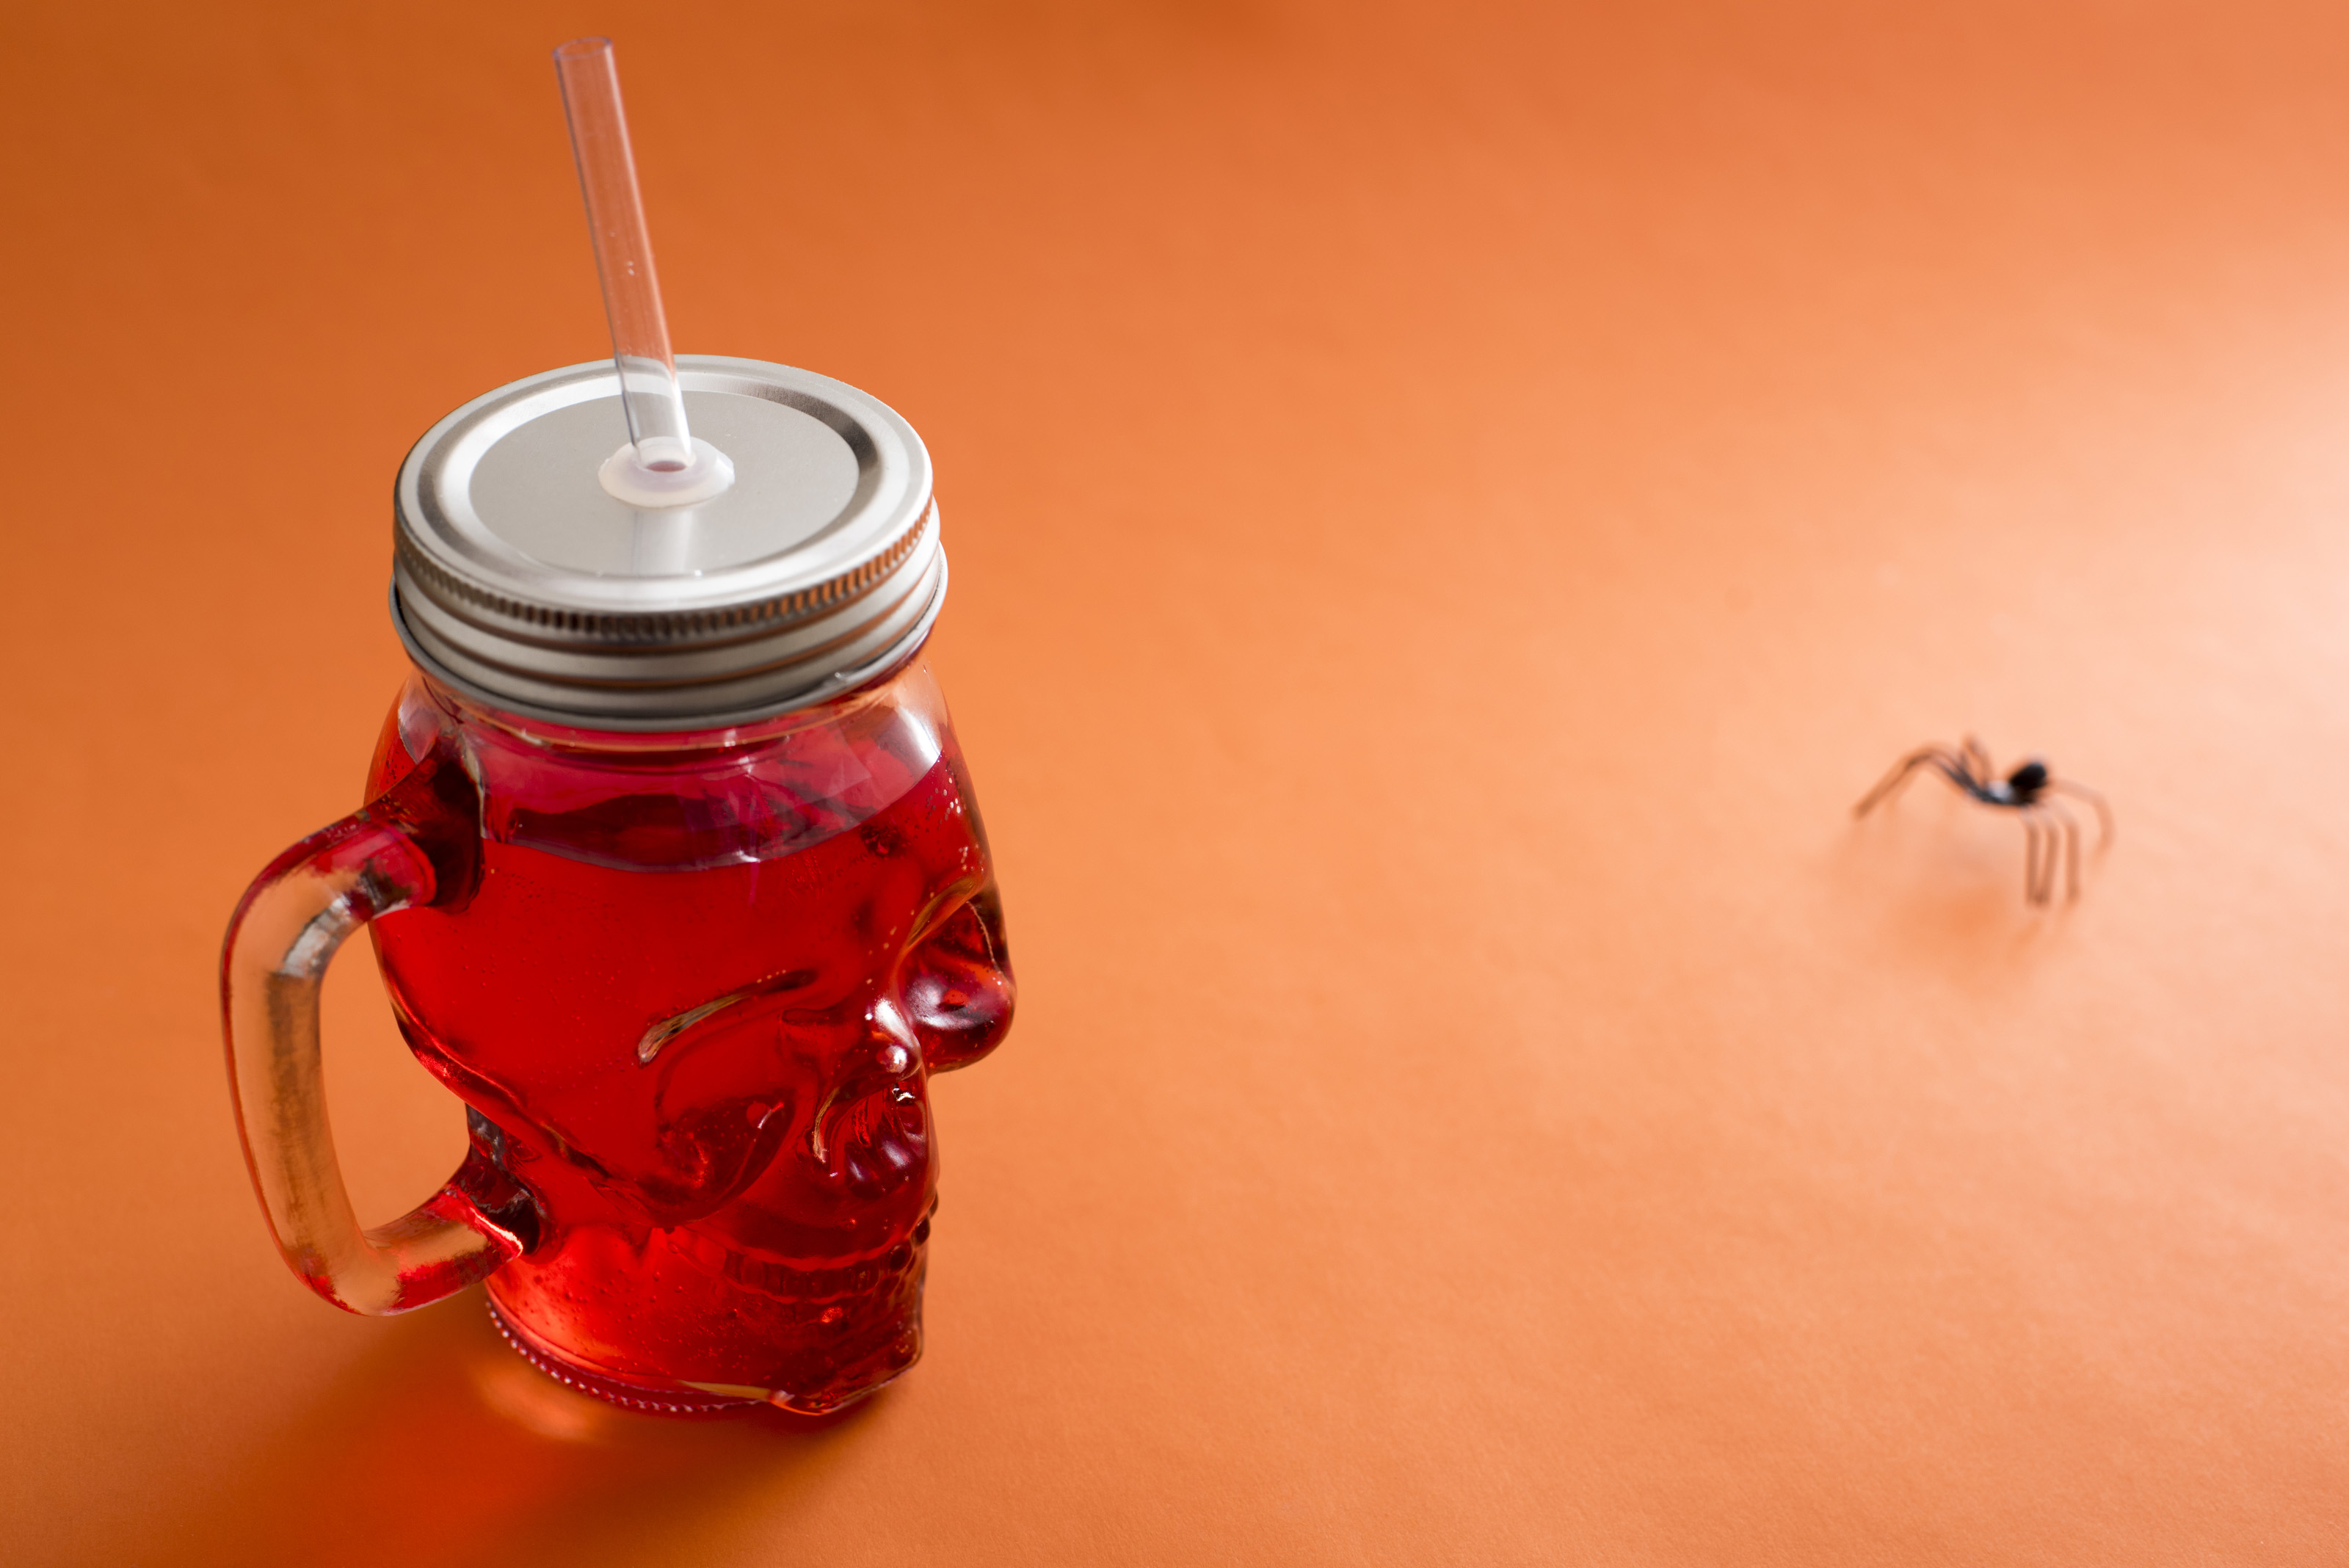 Novelty mason jar cup shaped like skull filled with red colored juice on orang table beside spider